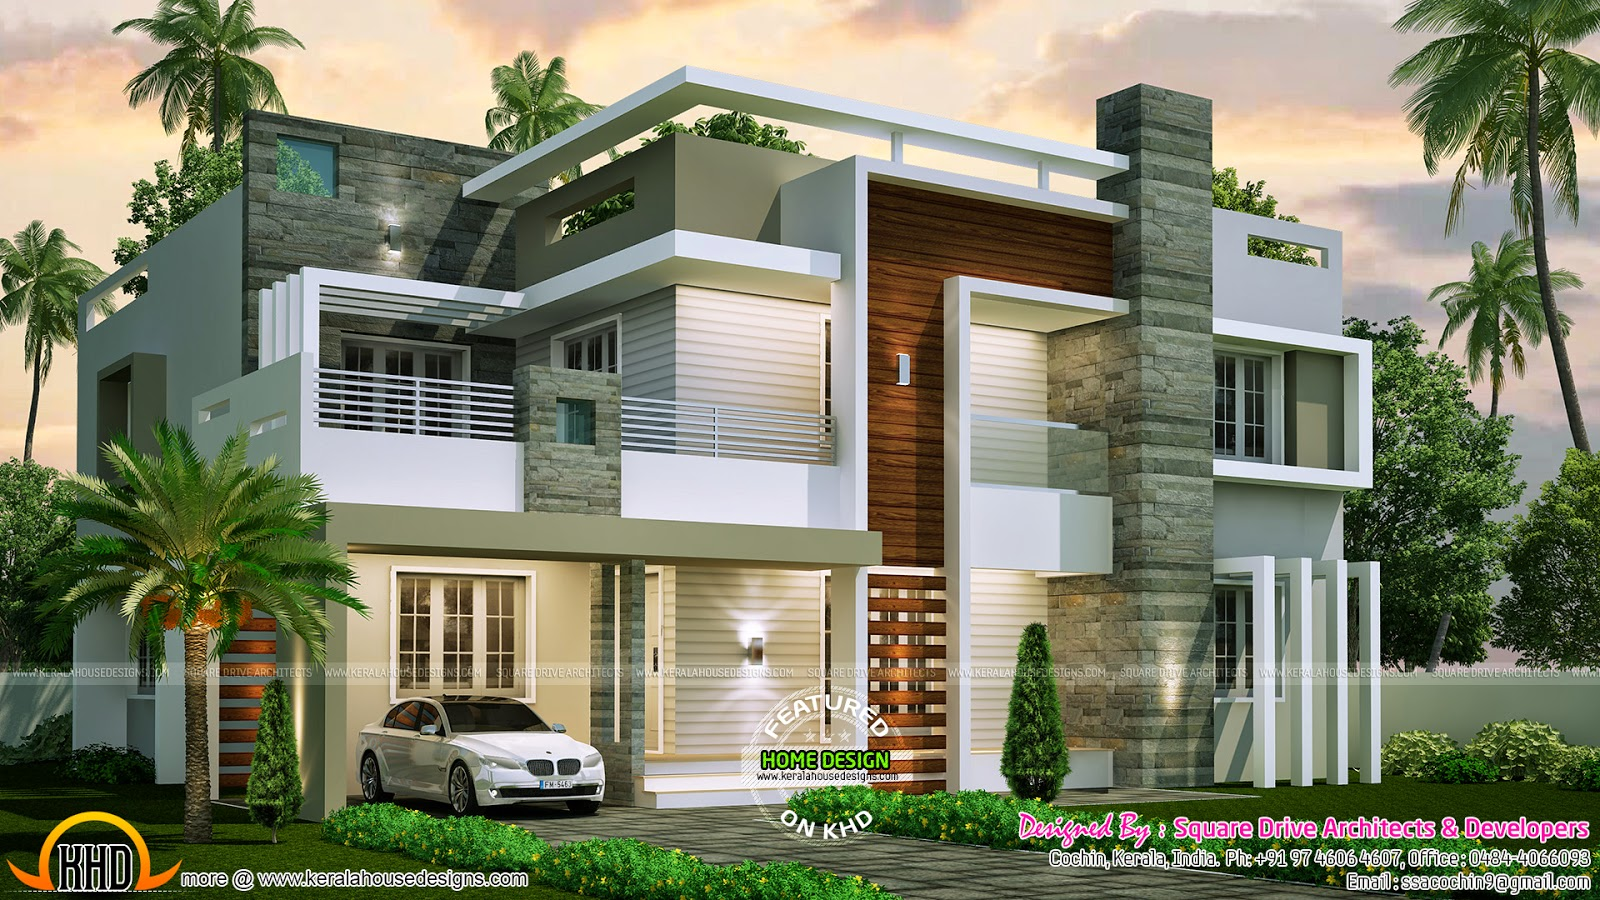 4 bedroom contemporary home design kerala home design for Modern house designs 2017